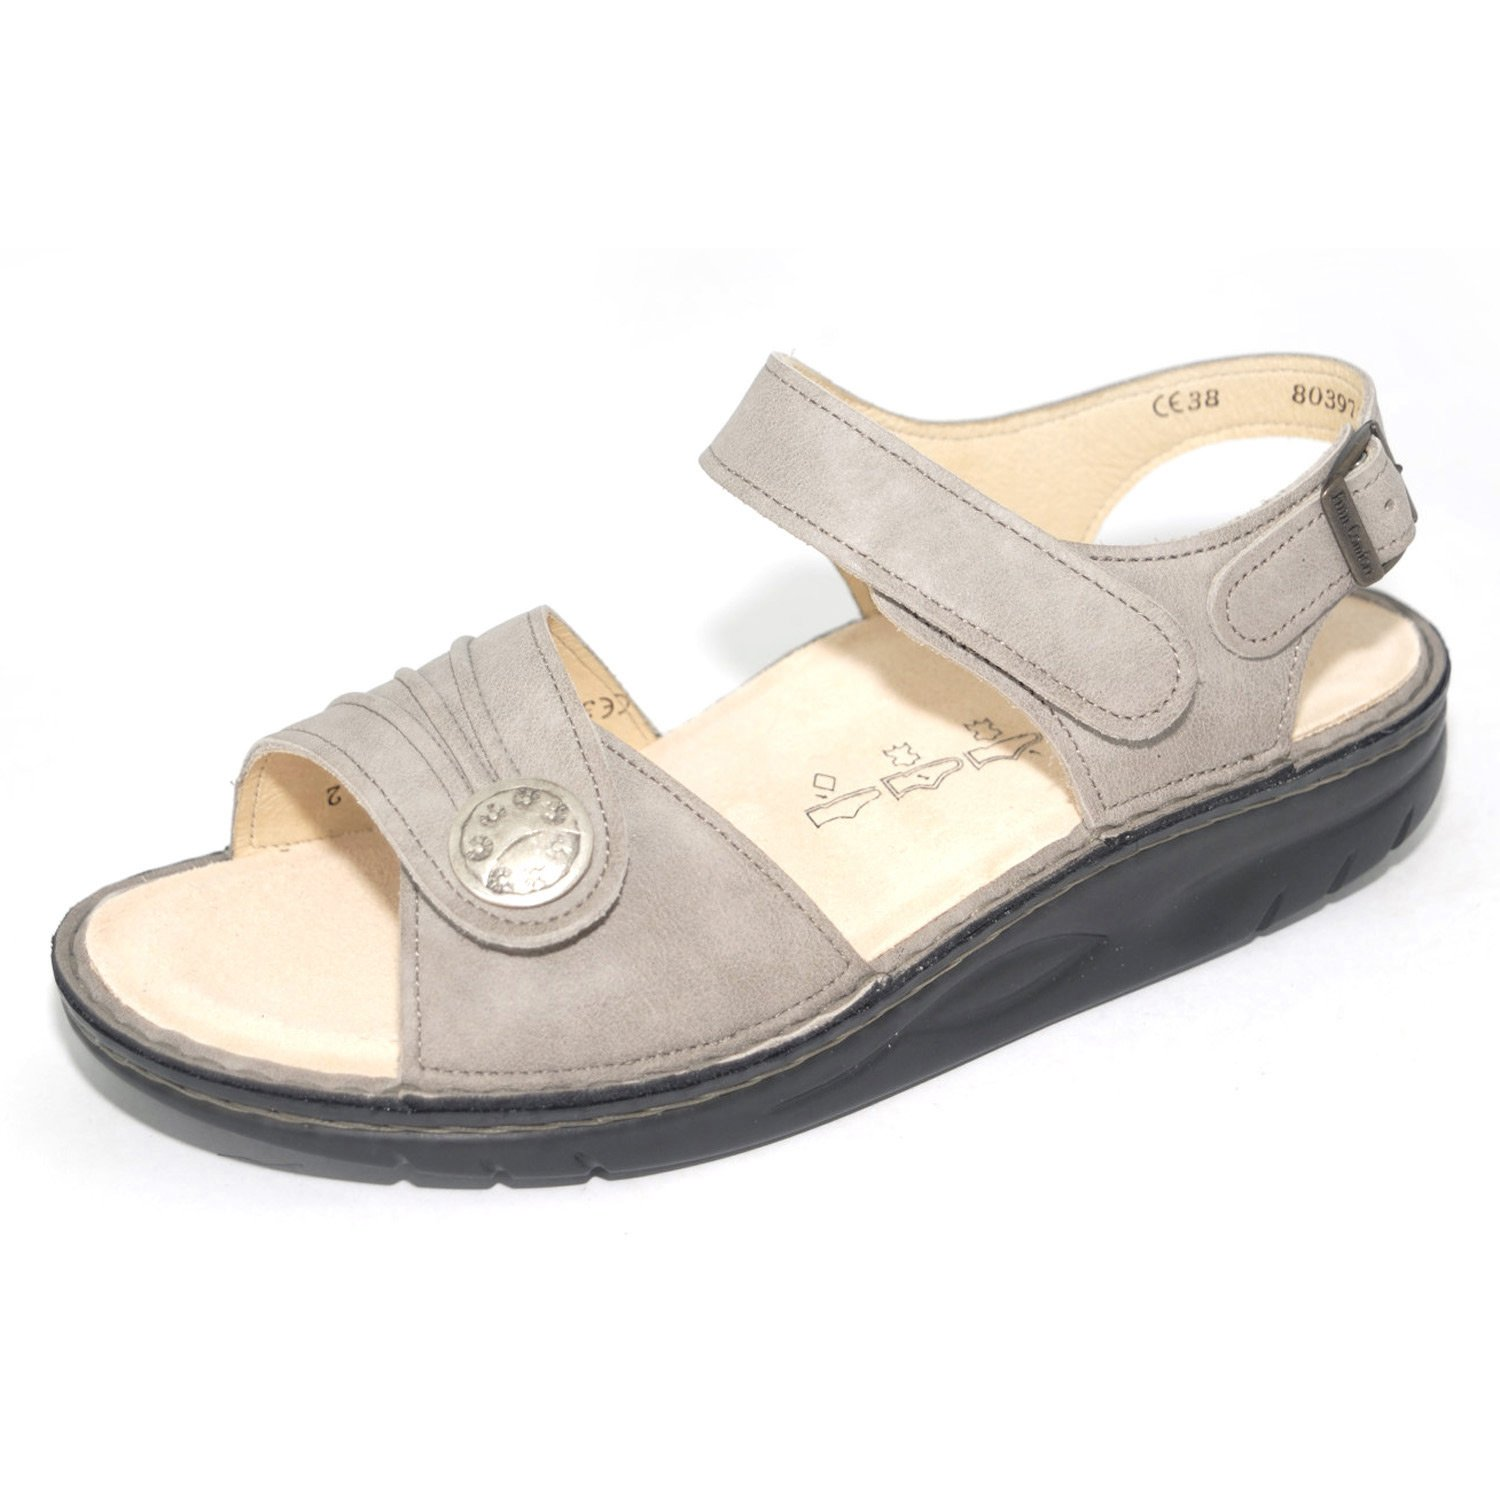 Finn Comfort Sausalito(Women's) -Saddle Maica Sale Outlet Locations hrLwgEY1